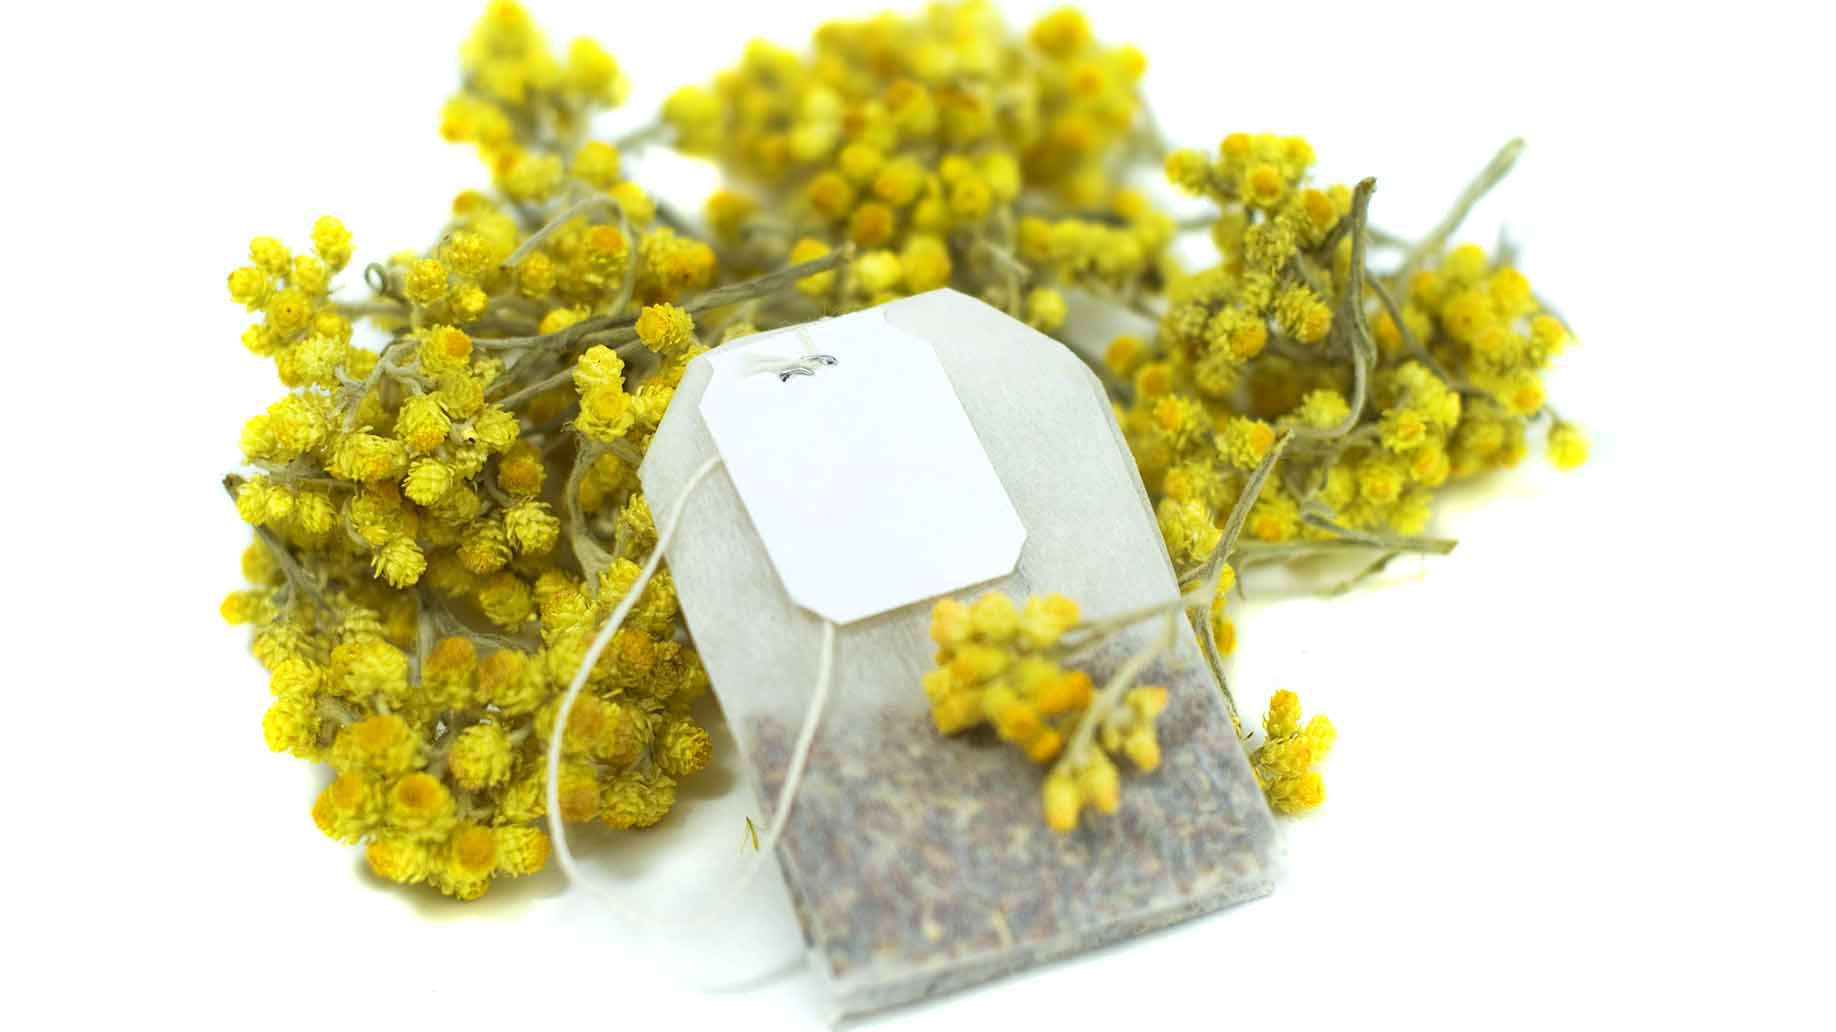 chamomile tea with flowers and teabag